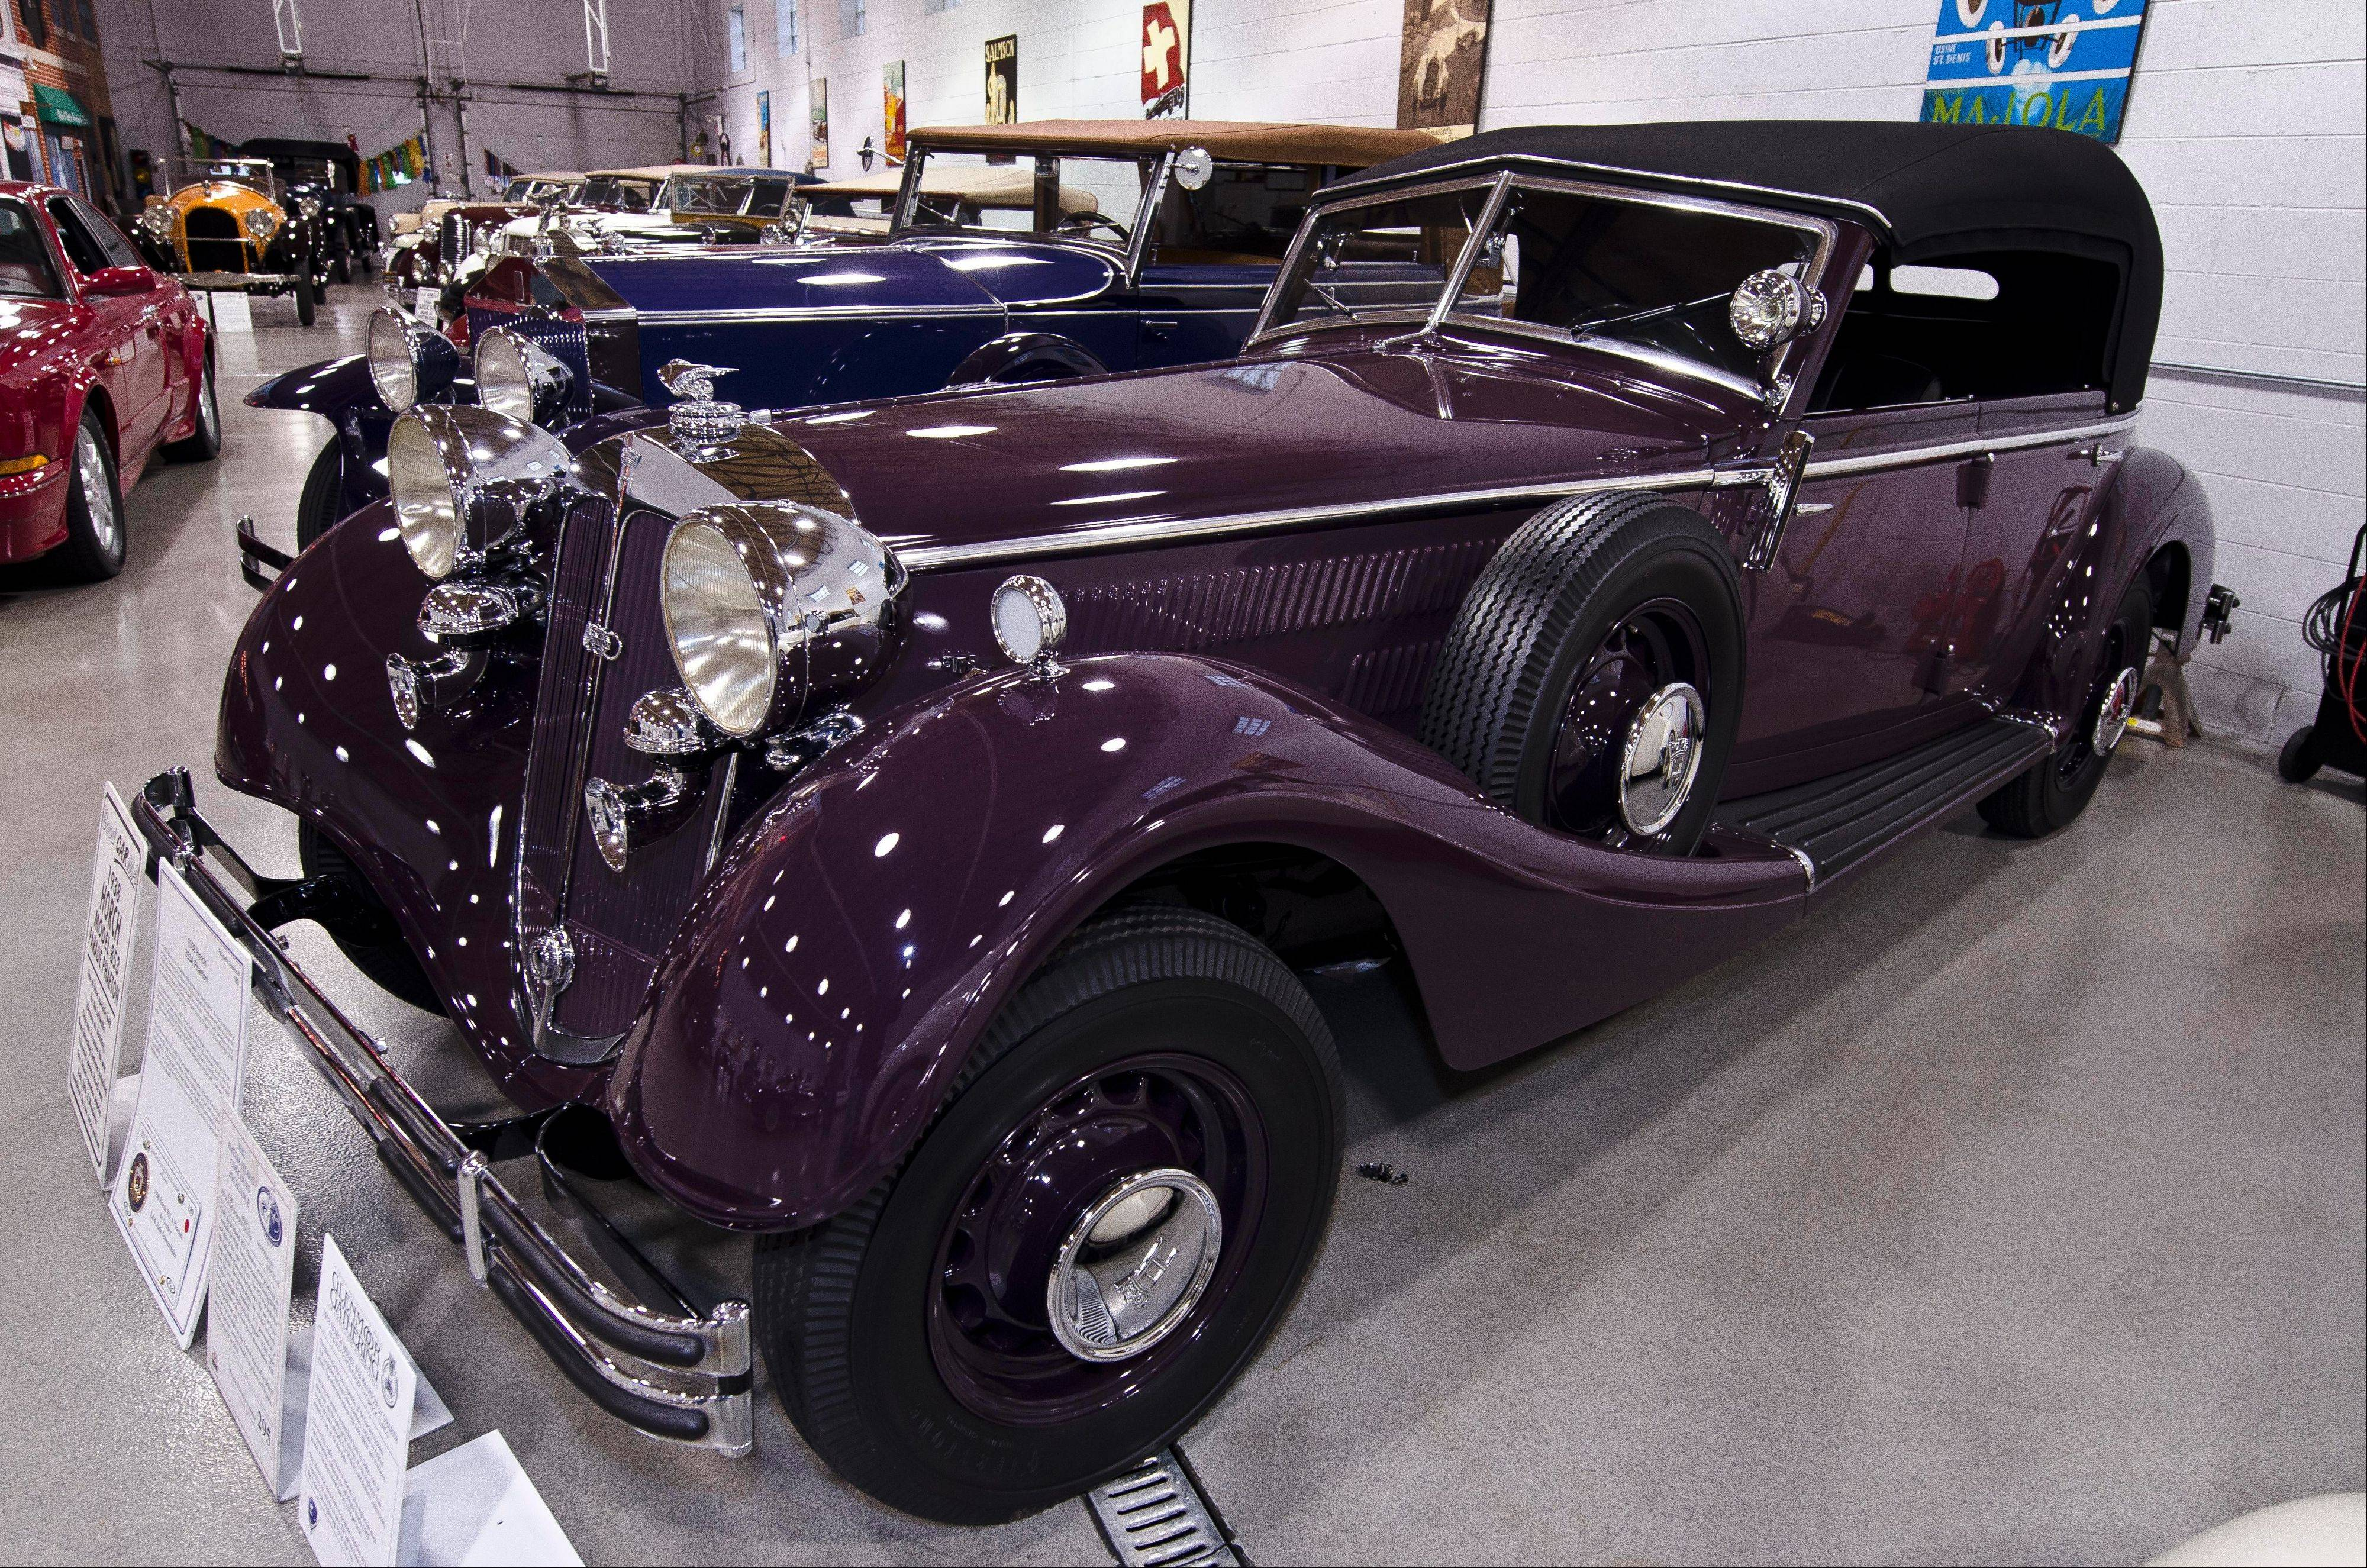 An example of the rarity found in the collection is this 1938 Horch 853 Phaeton, one of three made for the German Luftwaffe, and the only one known to survive World War II.